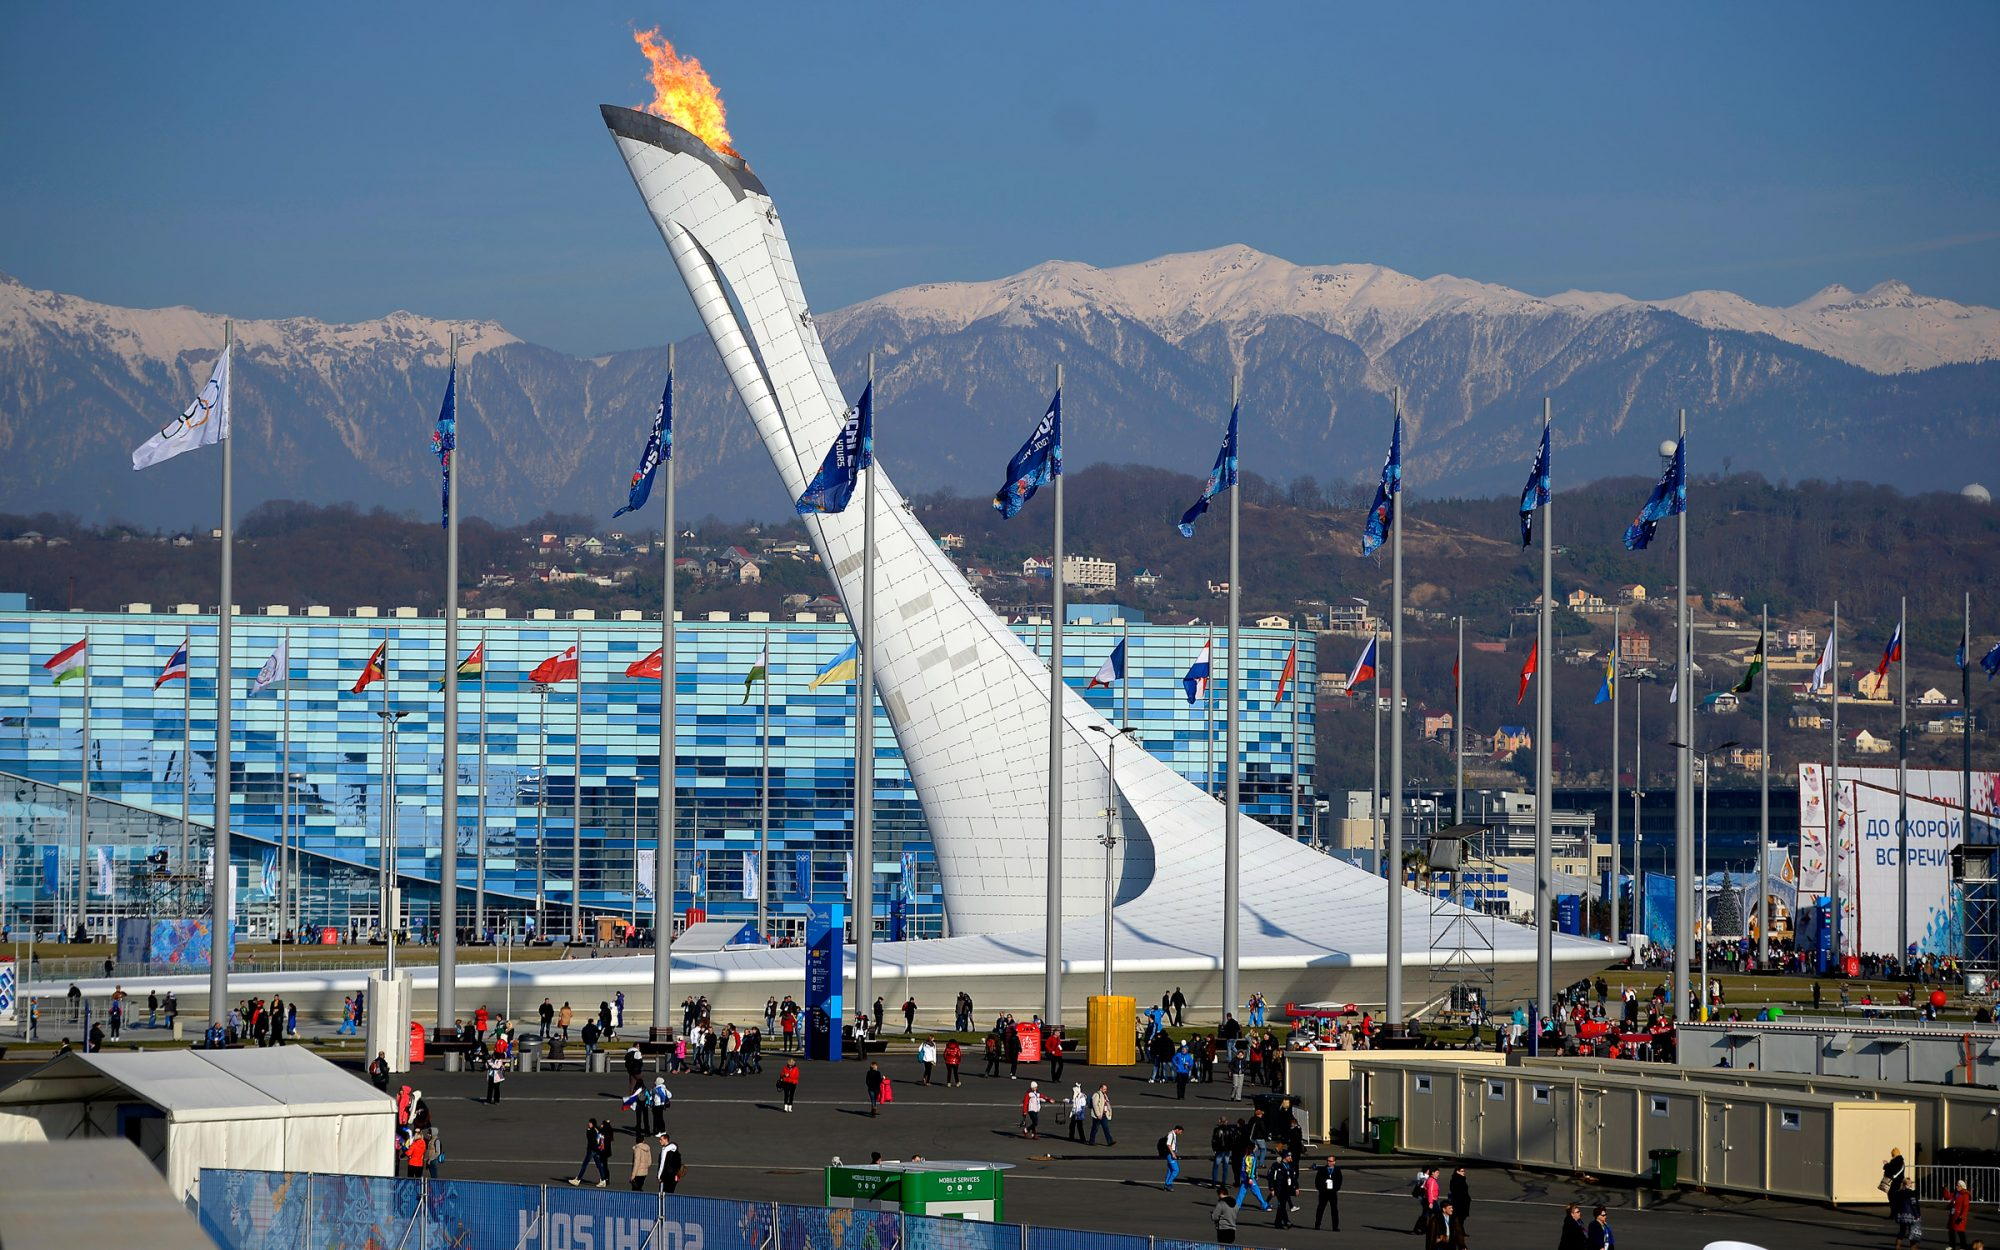 Why the Olympics are Bad for Cities